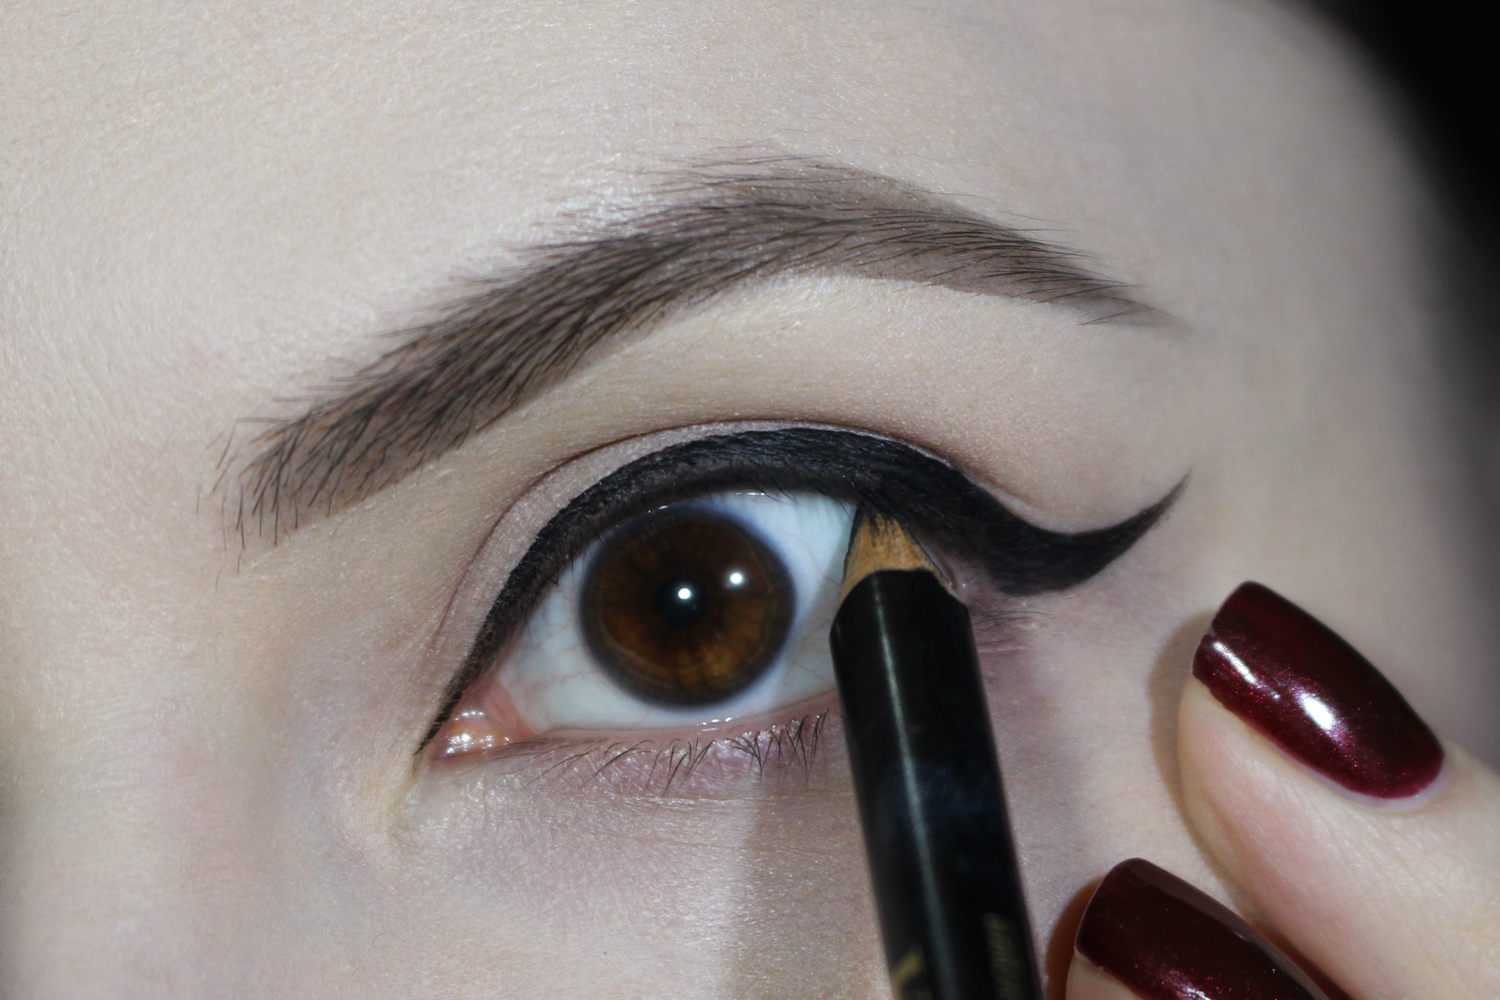 a close-up picture of an eye with a dramatic eyeliner makeup